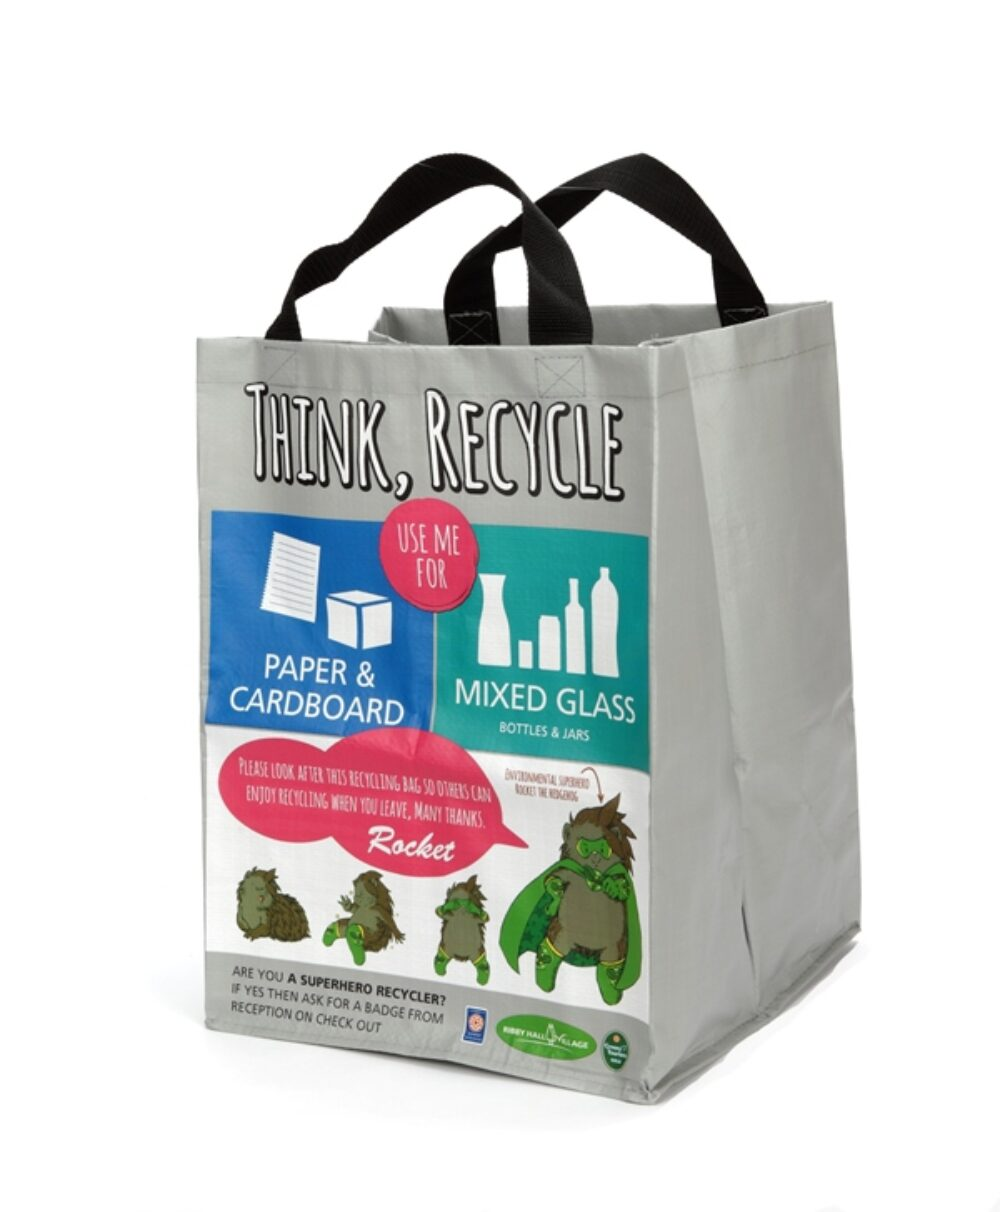 Using Recycling Bags & Shopping Bags to Promote Recycling Initiatives and Improve Recycling Rates